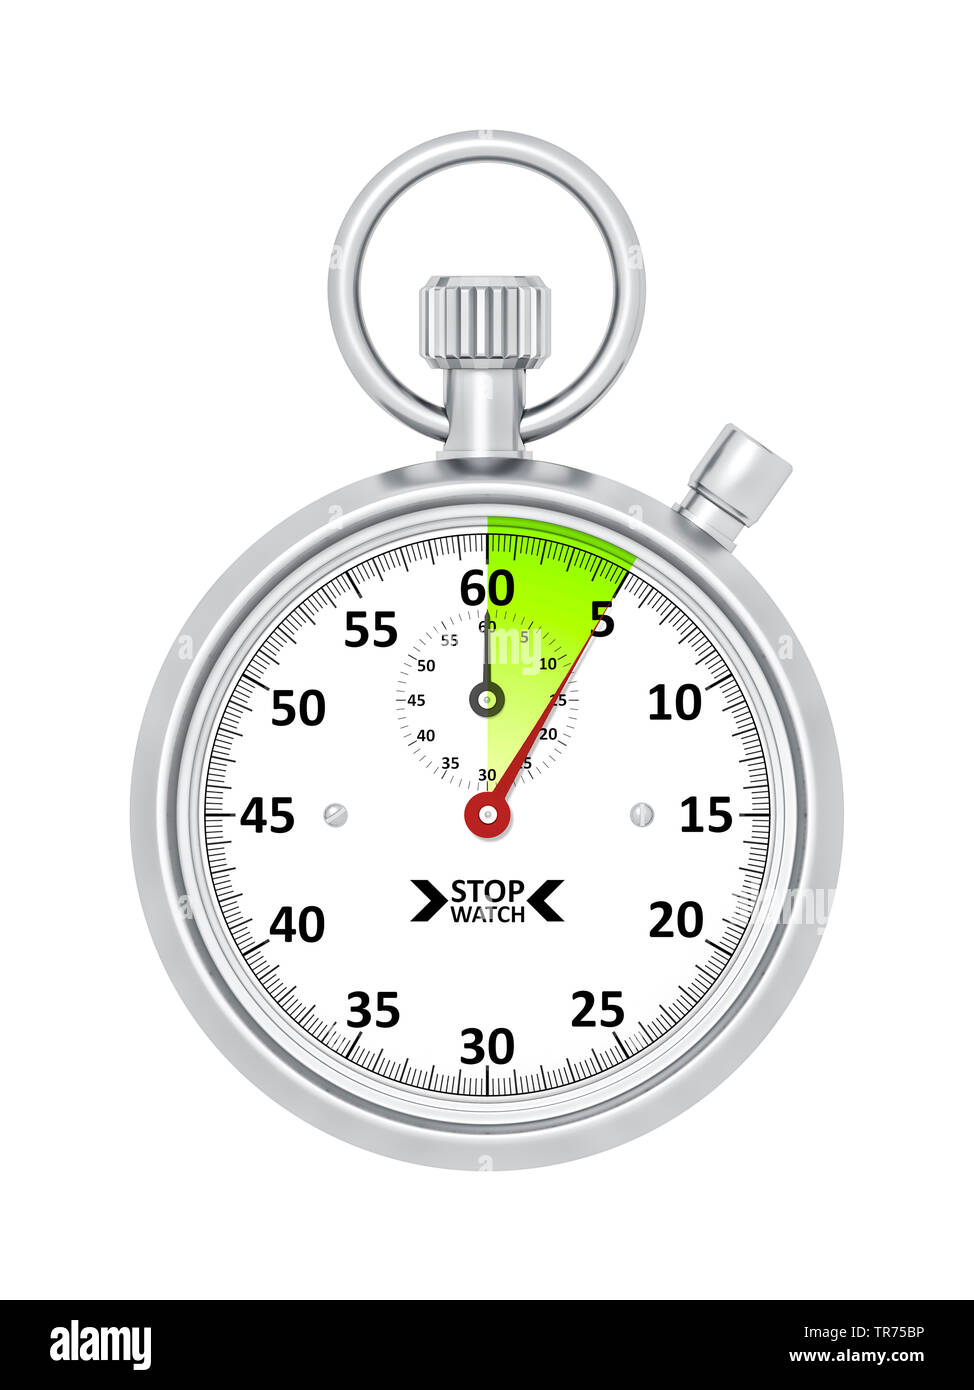 silver stopclock, cutout, 5 seconds - Stock Image